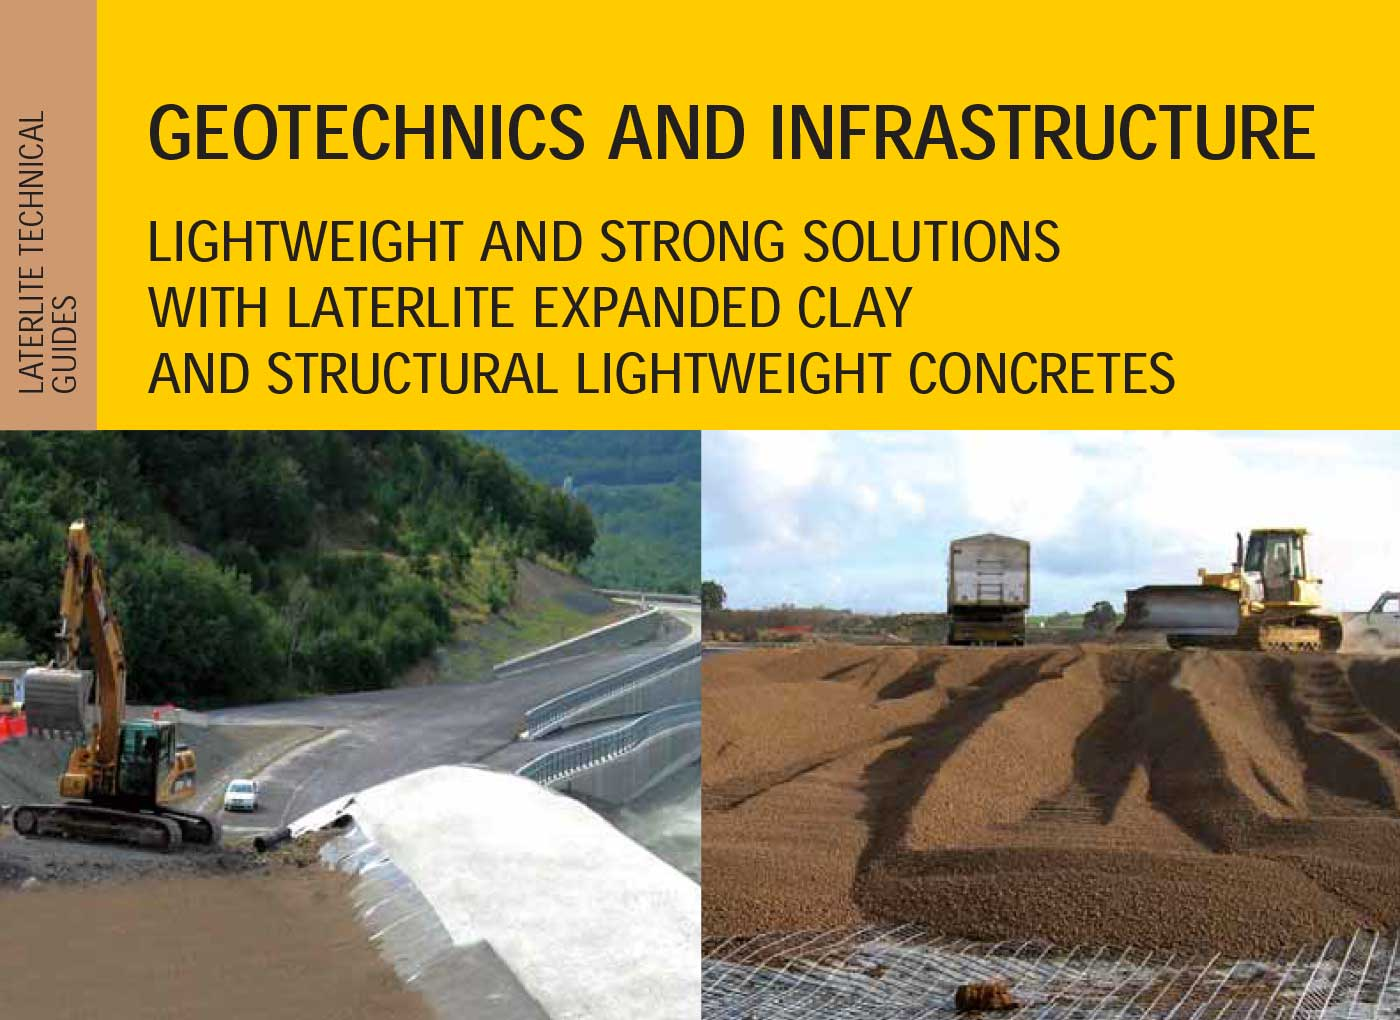 geotechnics-and-infrastructure-en